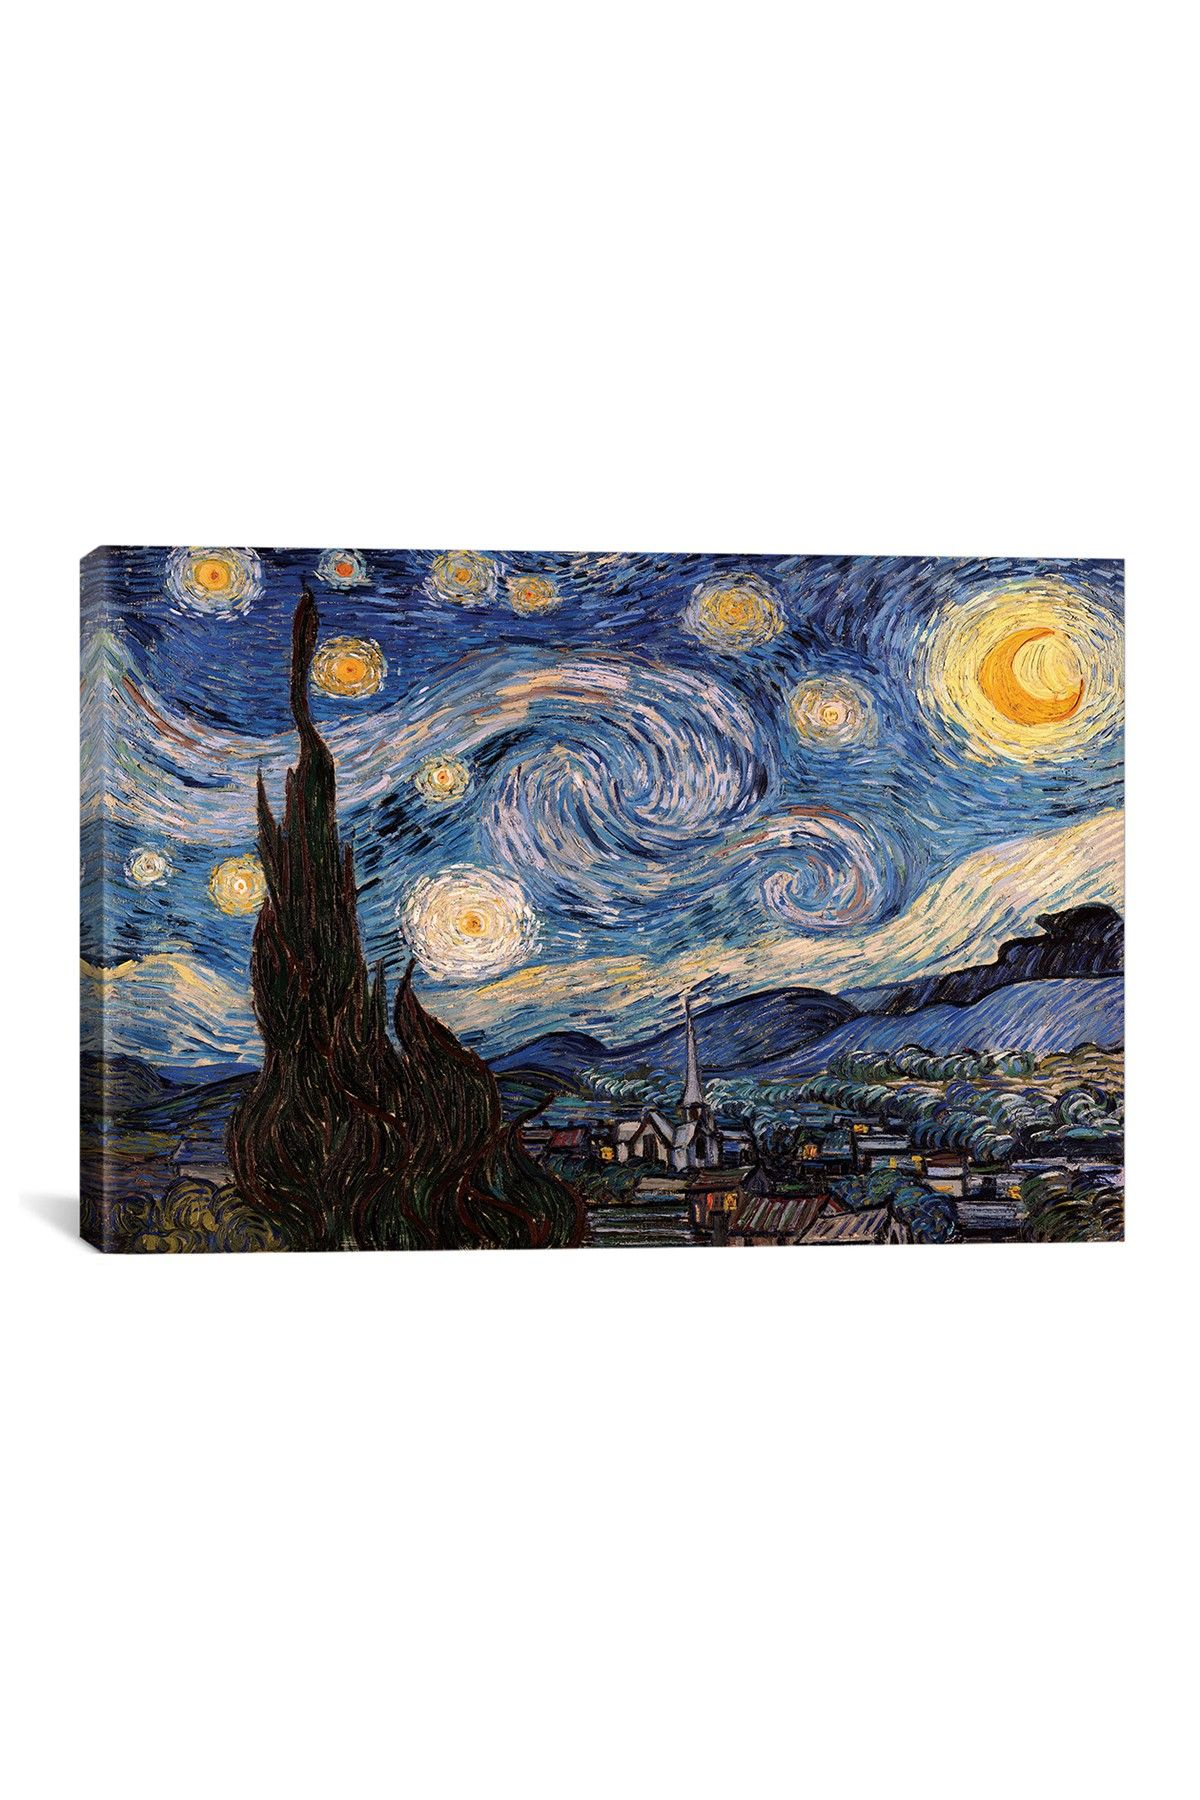 Icanvas The Starry Night By Vincent Van Gogh Wall Art Nordstrom Rack Van Gogh Wall Art Gogh The Starry Night Starry Night